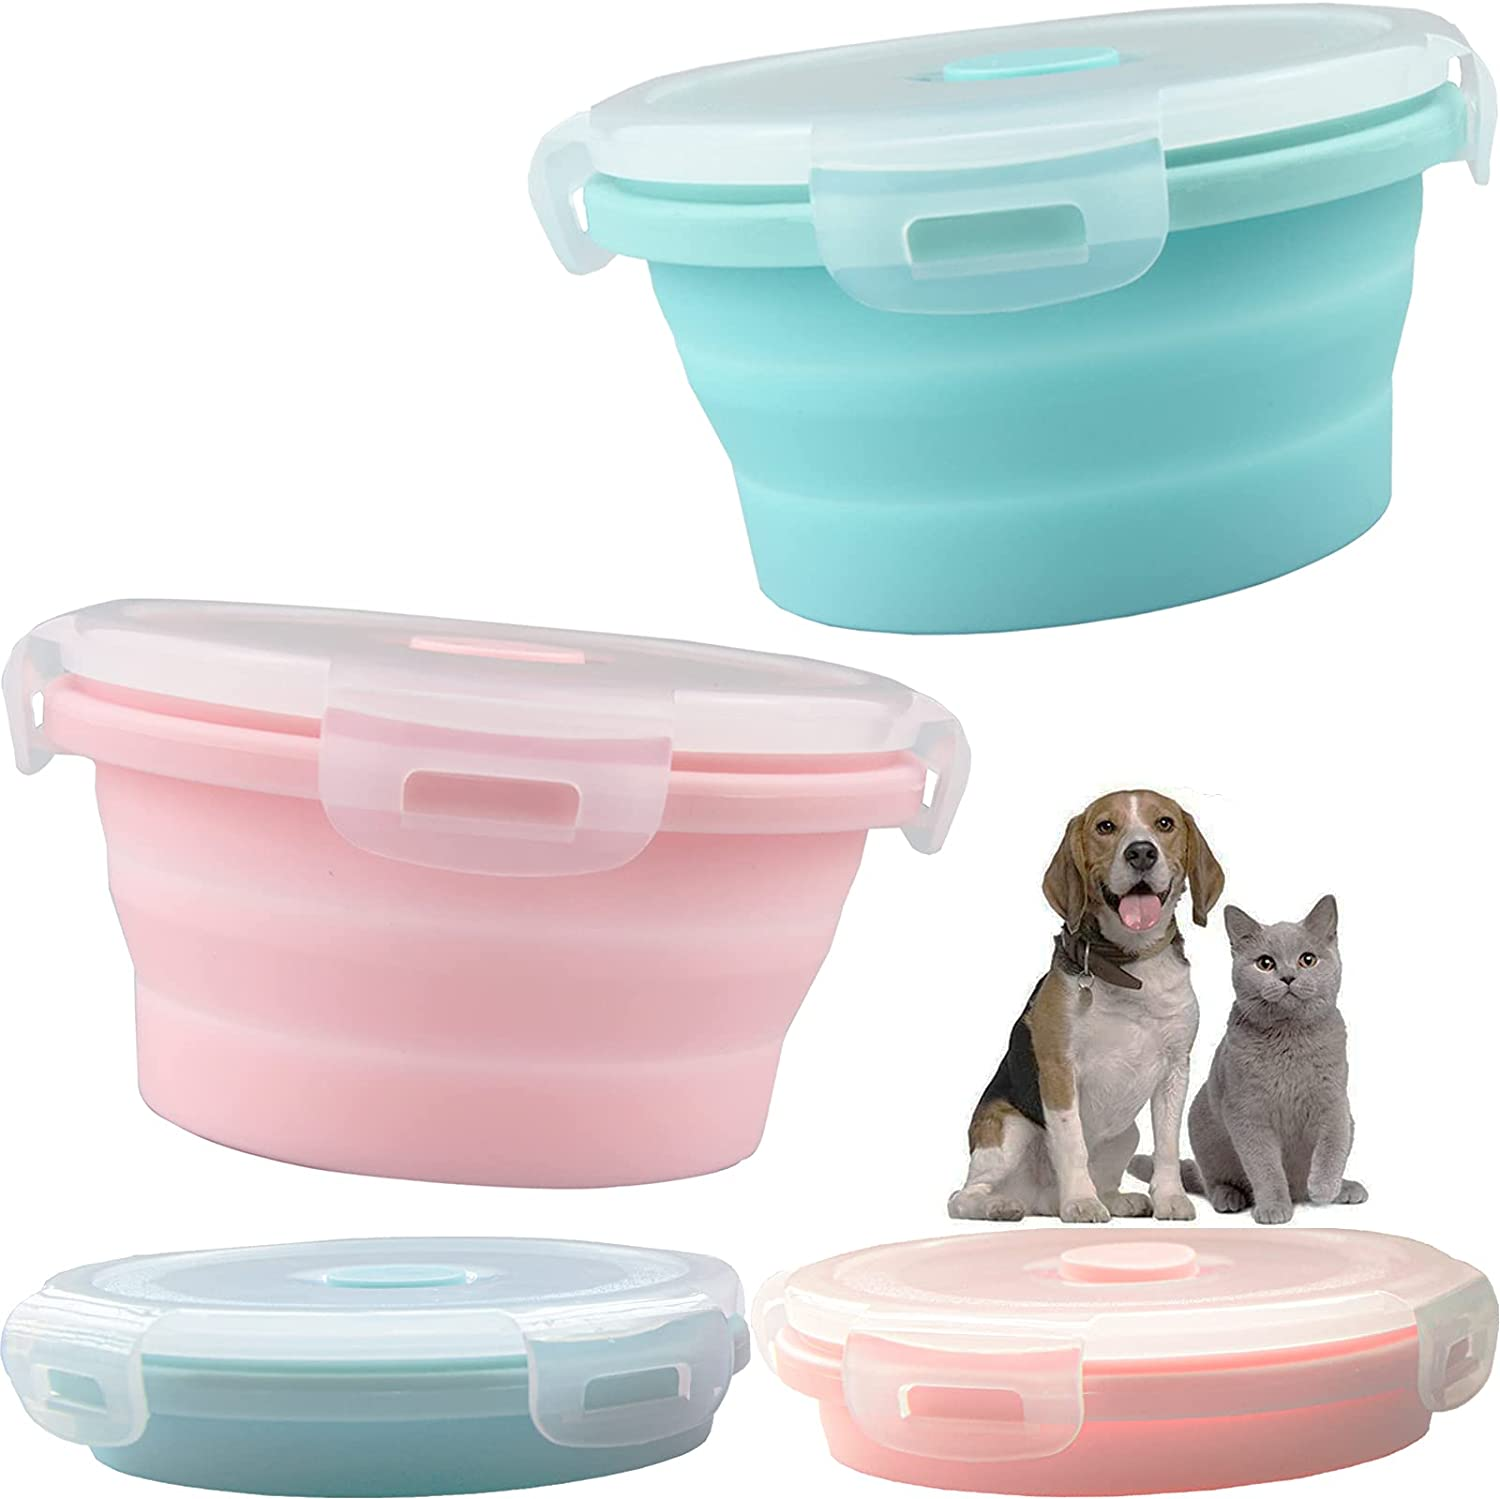 AIKS 2pcs Collapsible Dog Bowls Travel Dog Food Bowl with Lids Silicone Bowls for Dog/Cat Food Water Feeding Pet Feeding Watering Cup Dish for Walking Kennels Camping (12x12x3cm) (Pink & Blue)